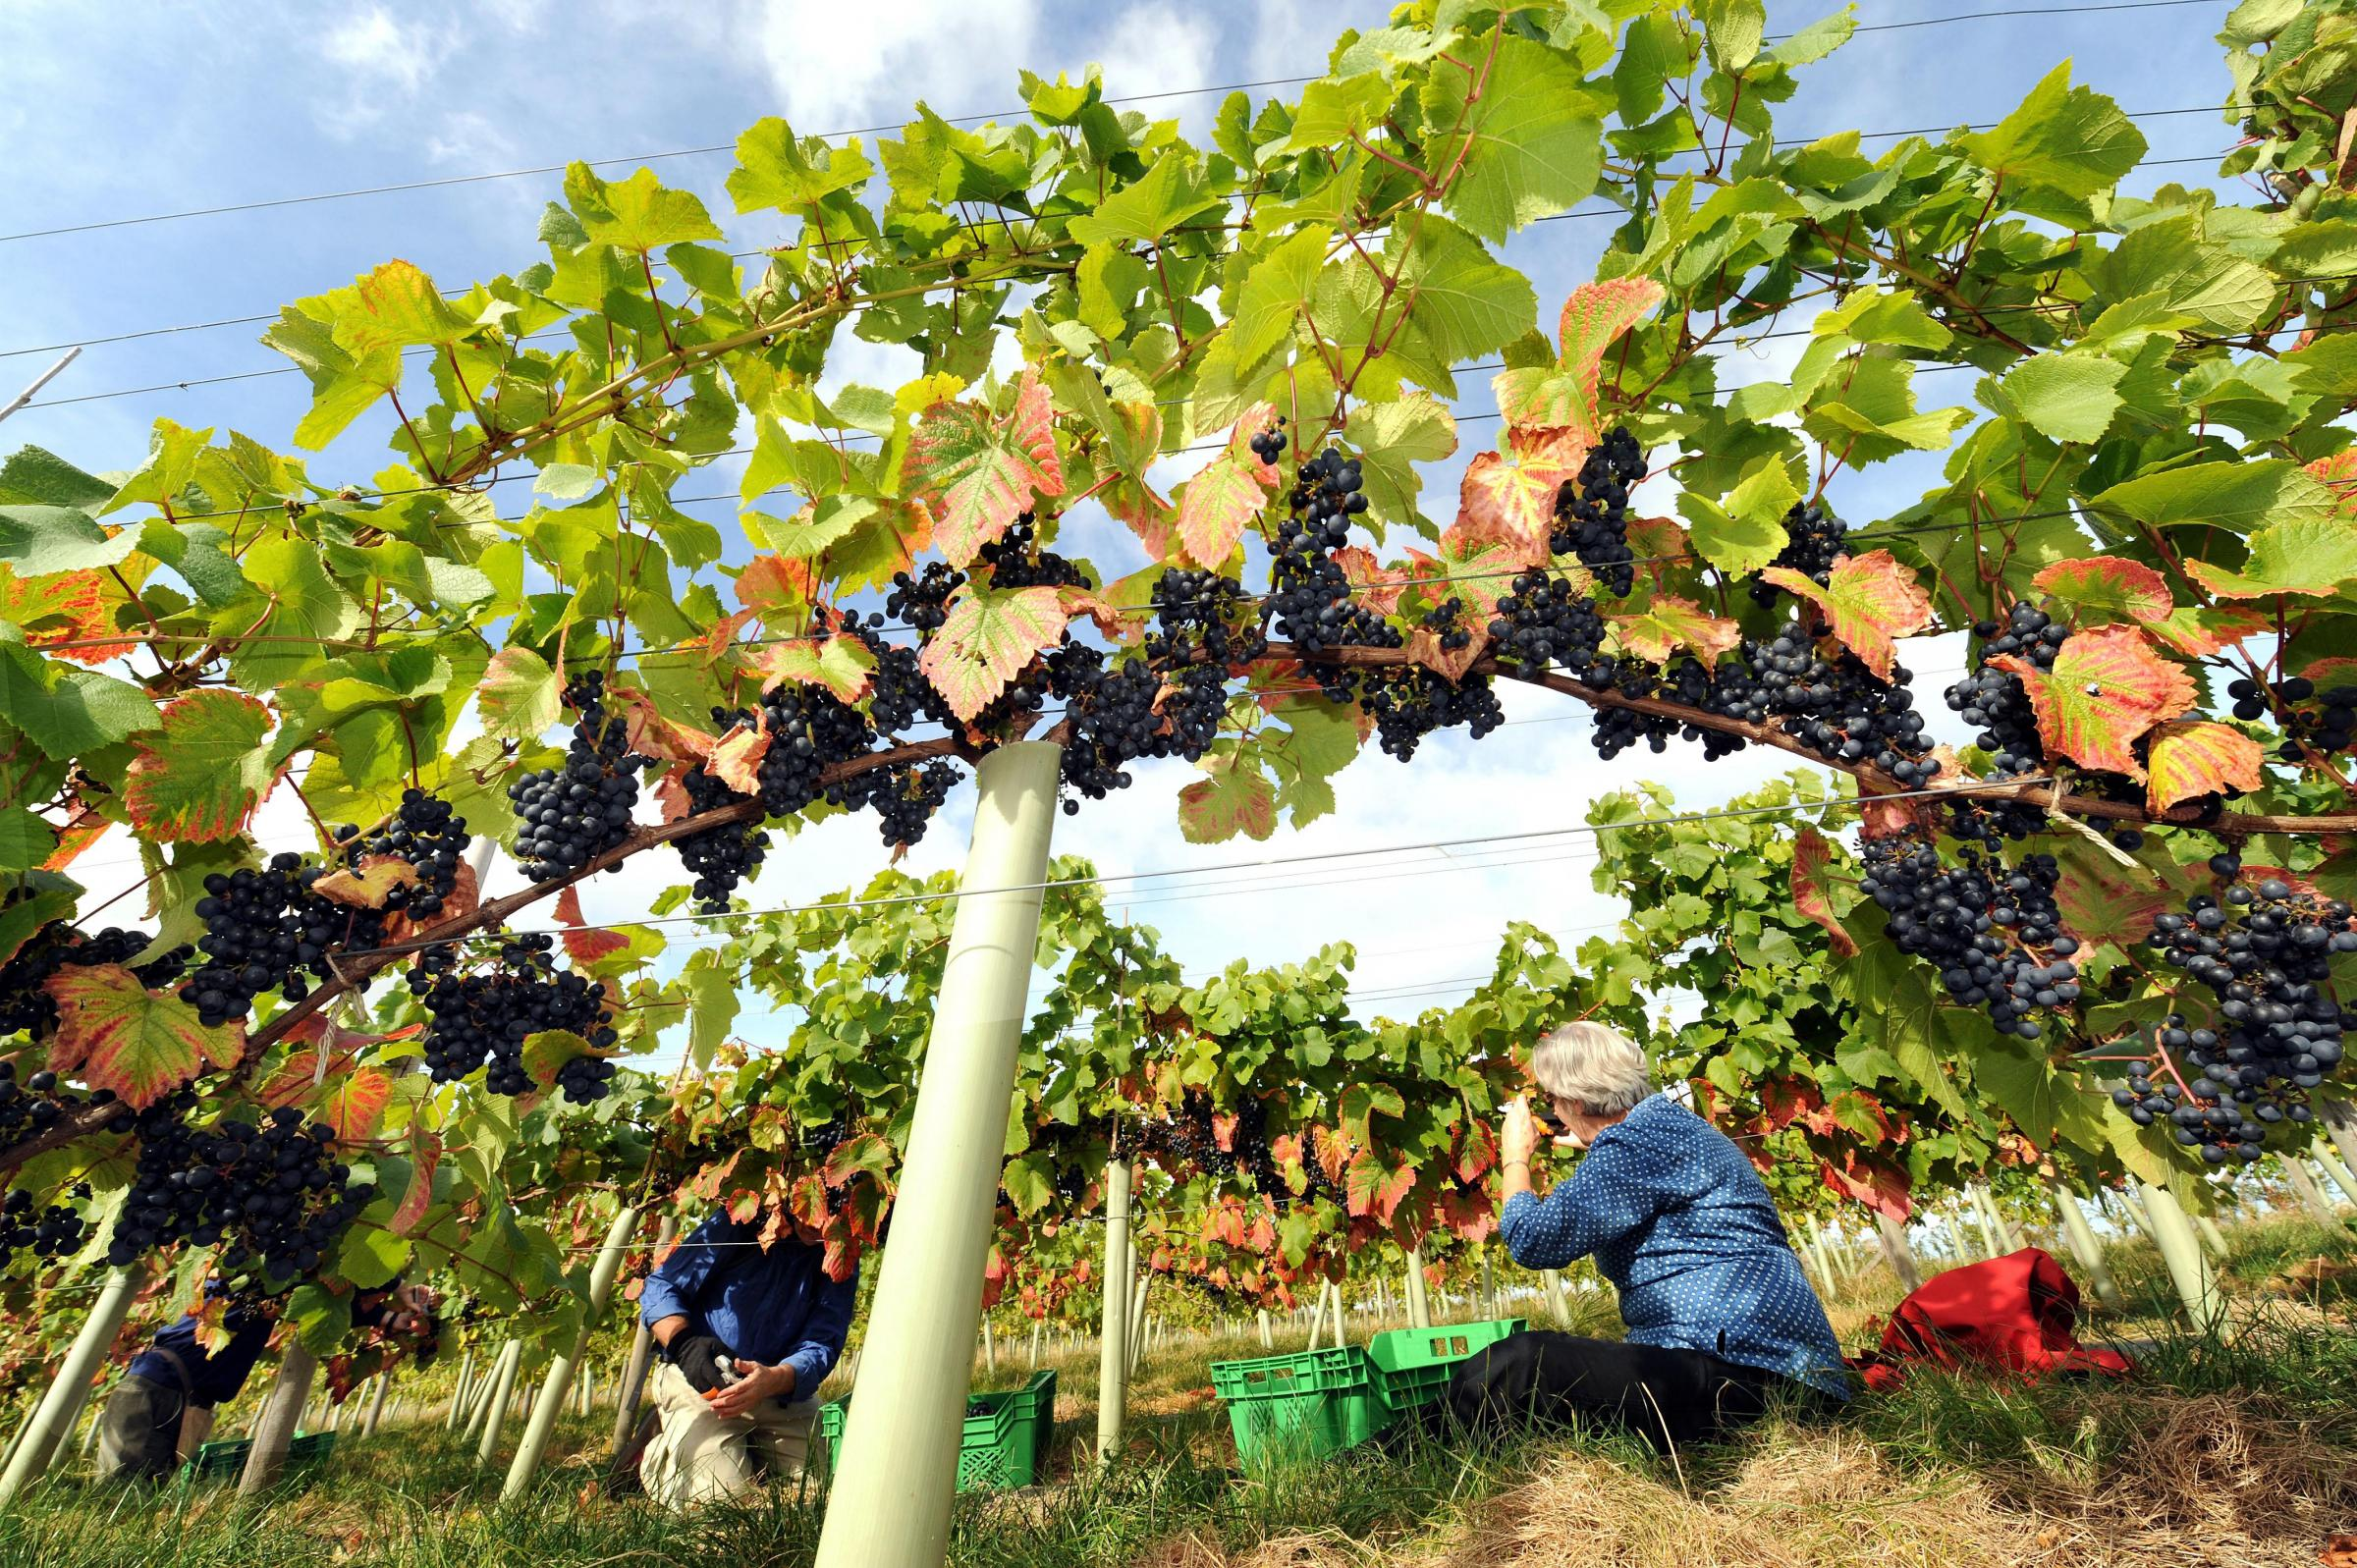 Pickers gather grapes at Ryedale Vineyard in Westow     Picture: John Giles/PA Wire